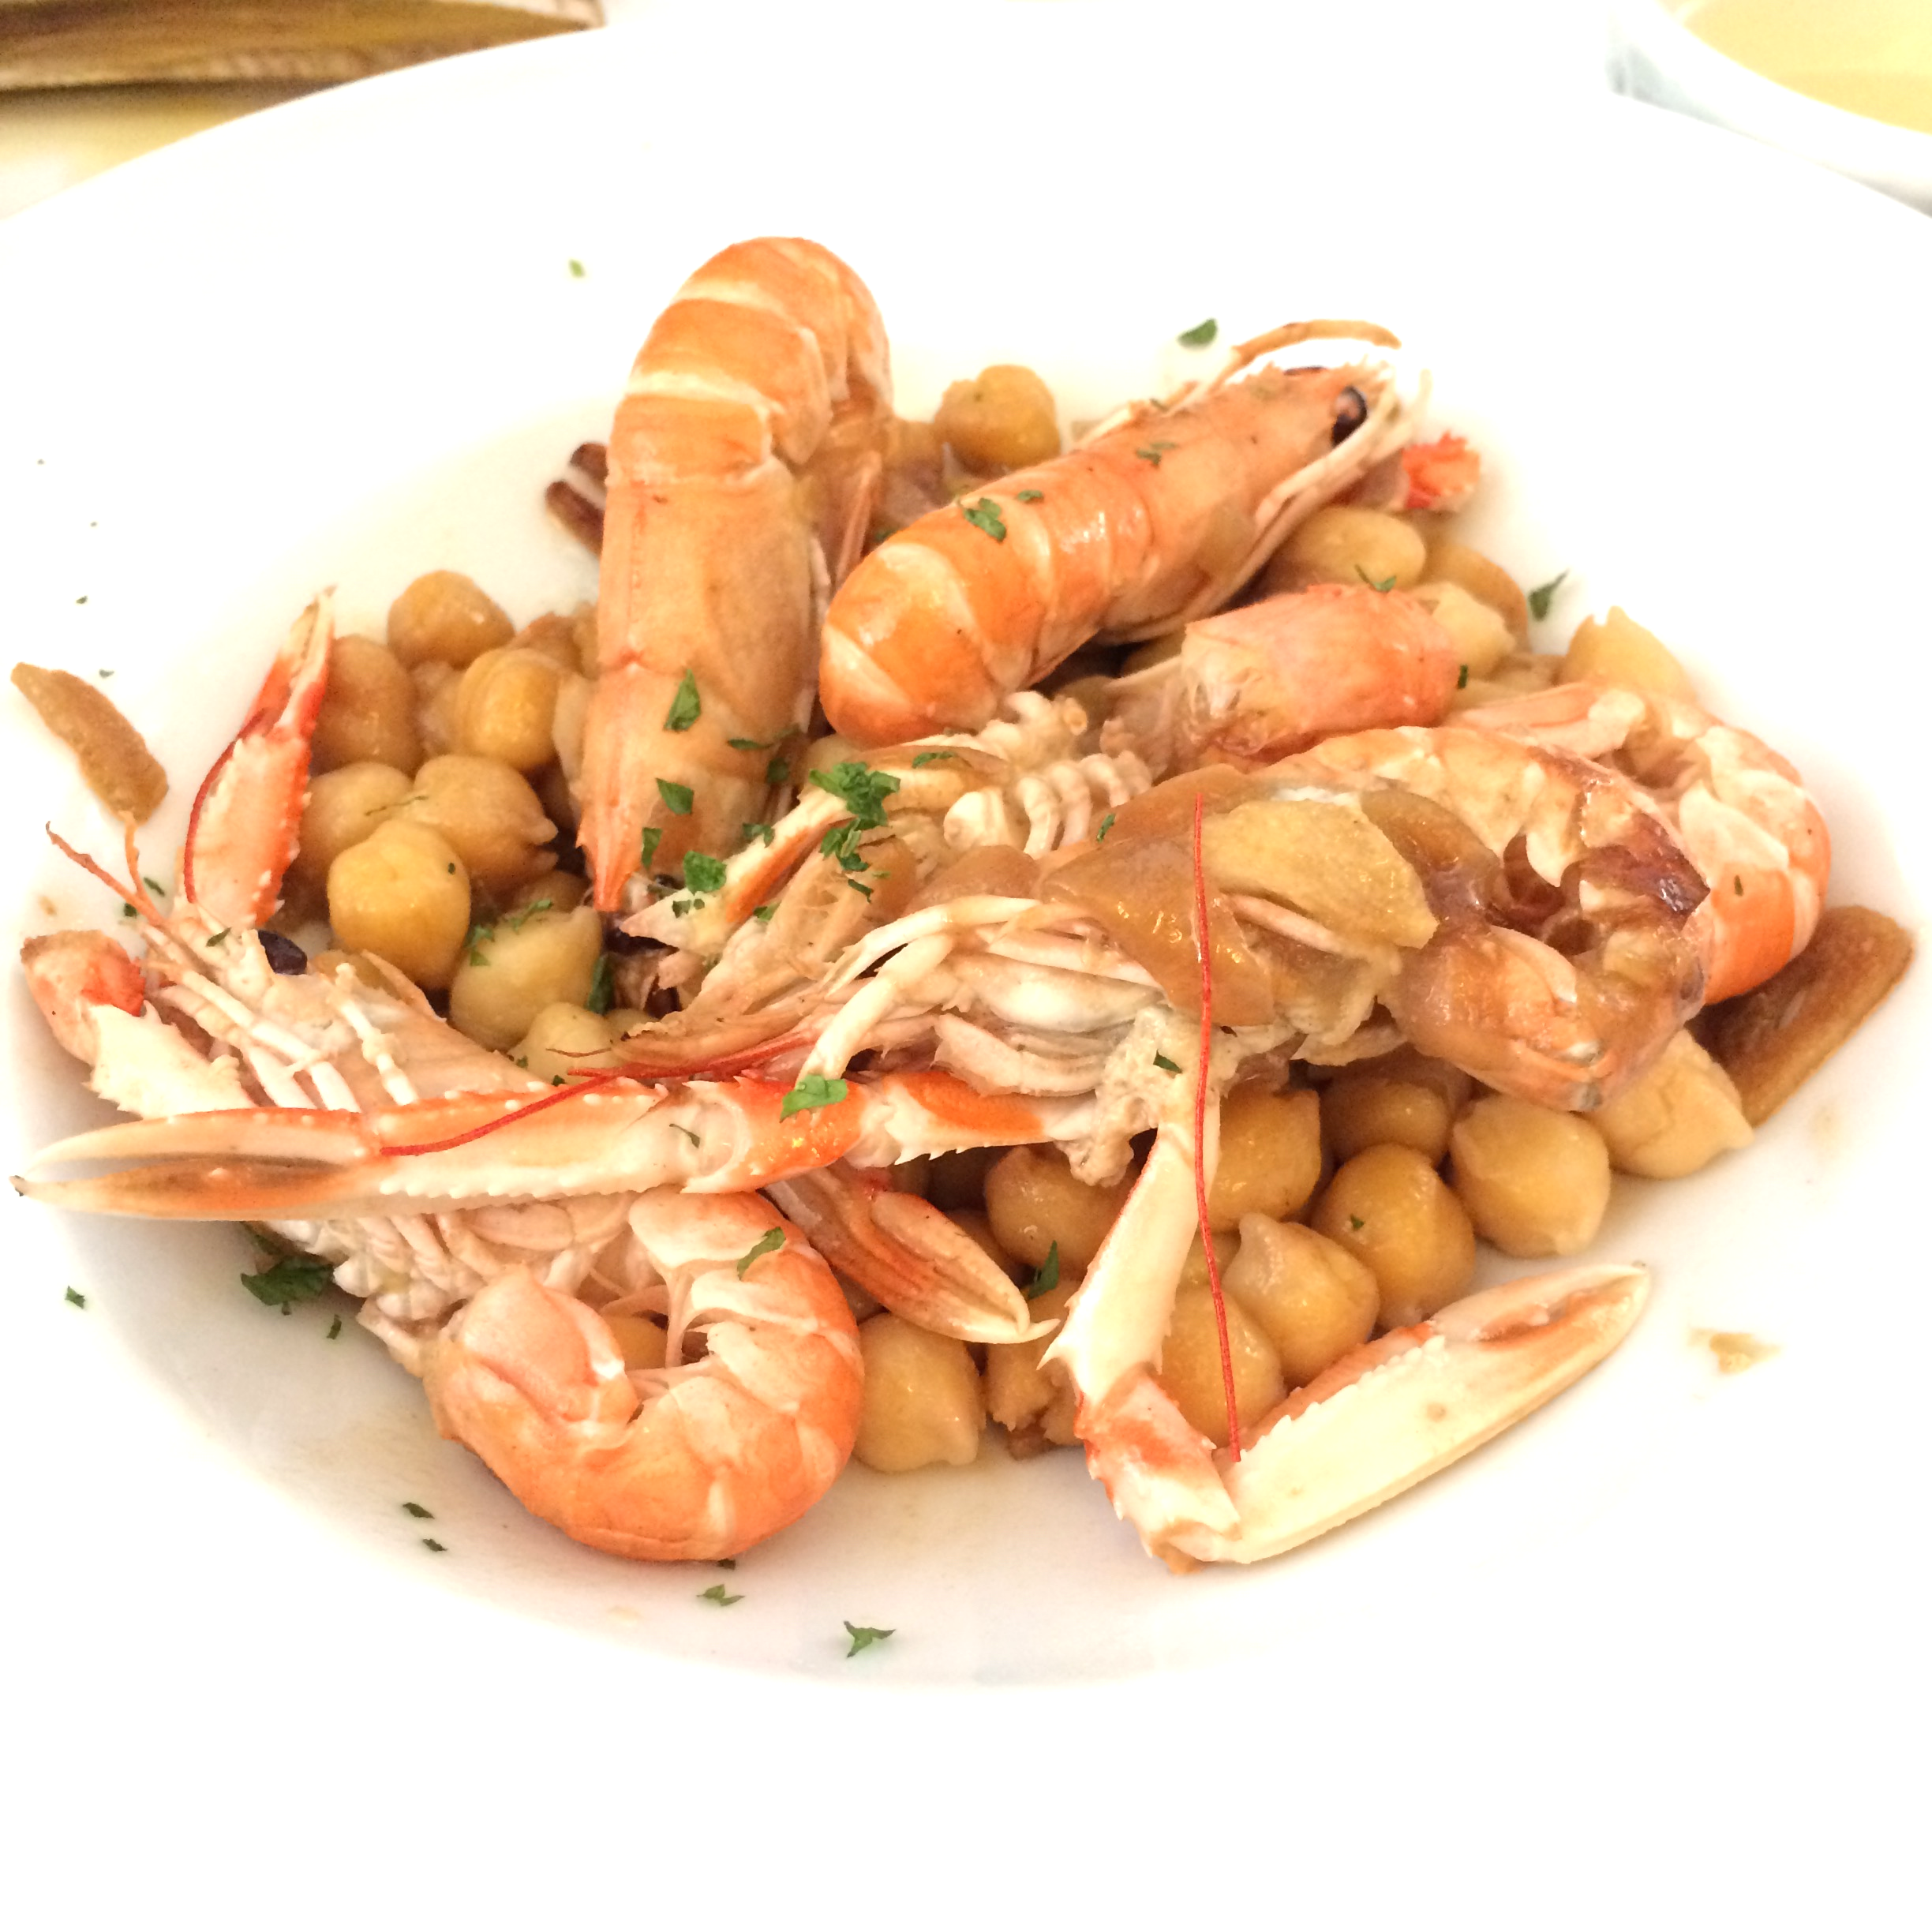 Prawns and chick peas at La Freiduria de Pauli, Barcelona